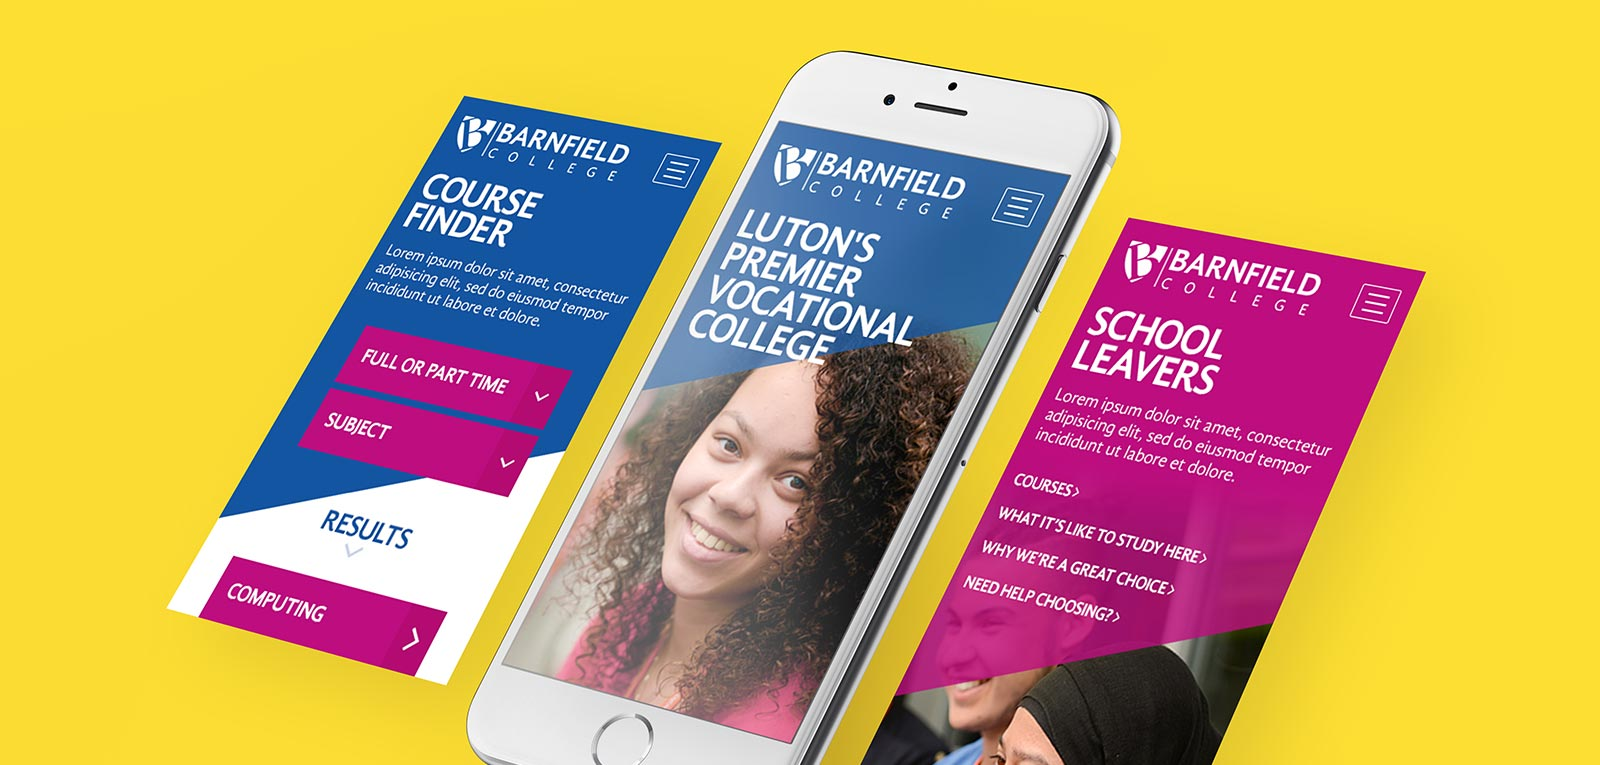 Barnfield College Website Optimised For Mobile Devices